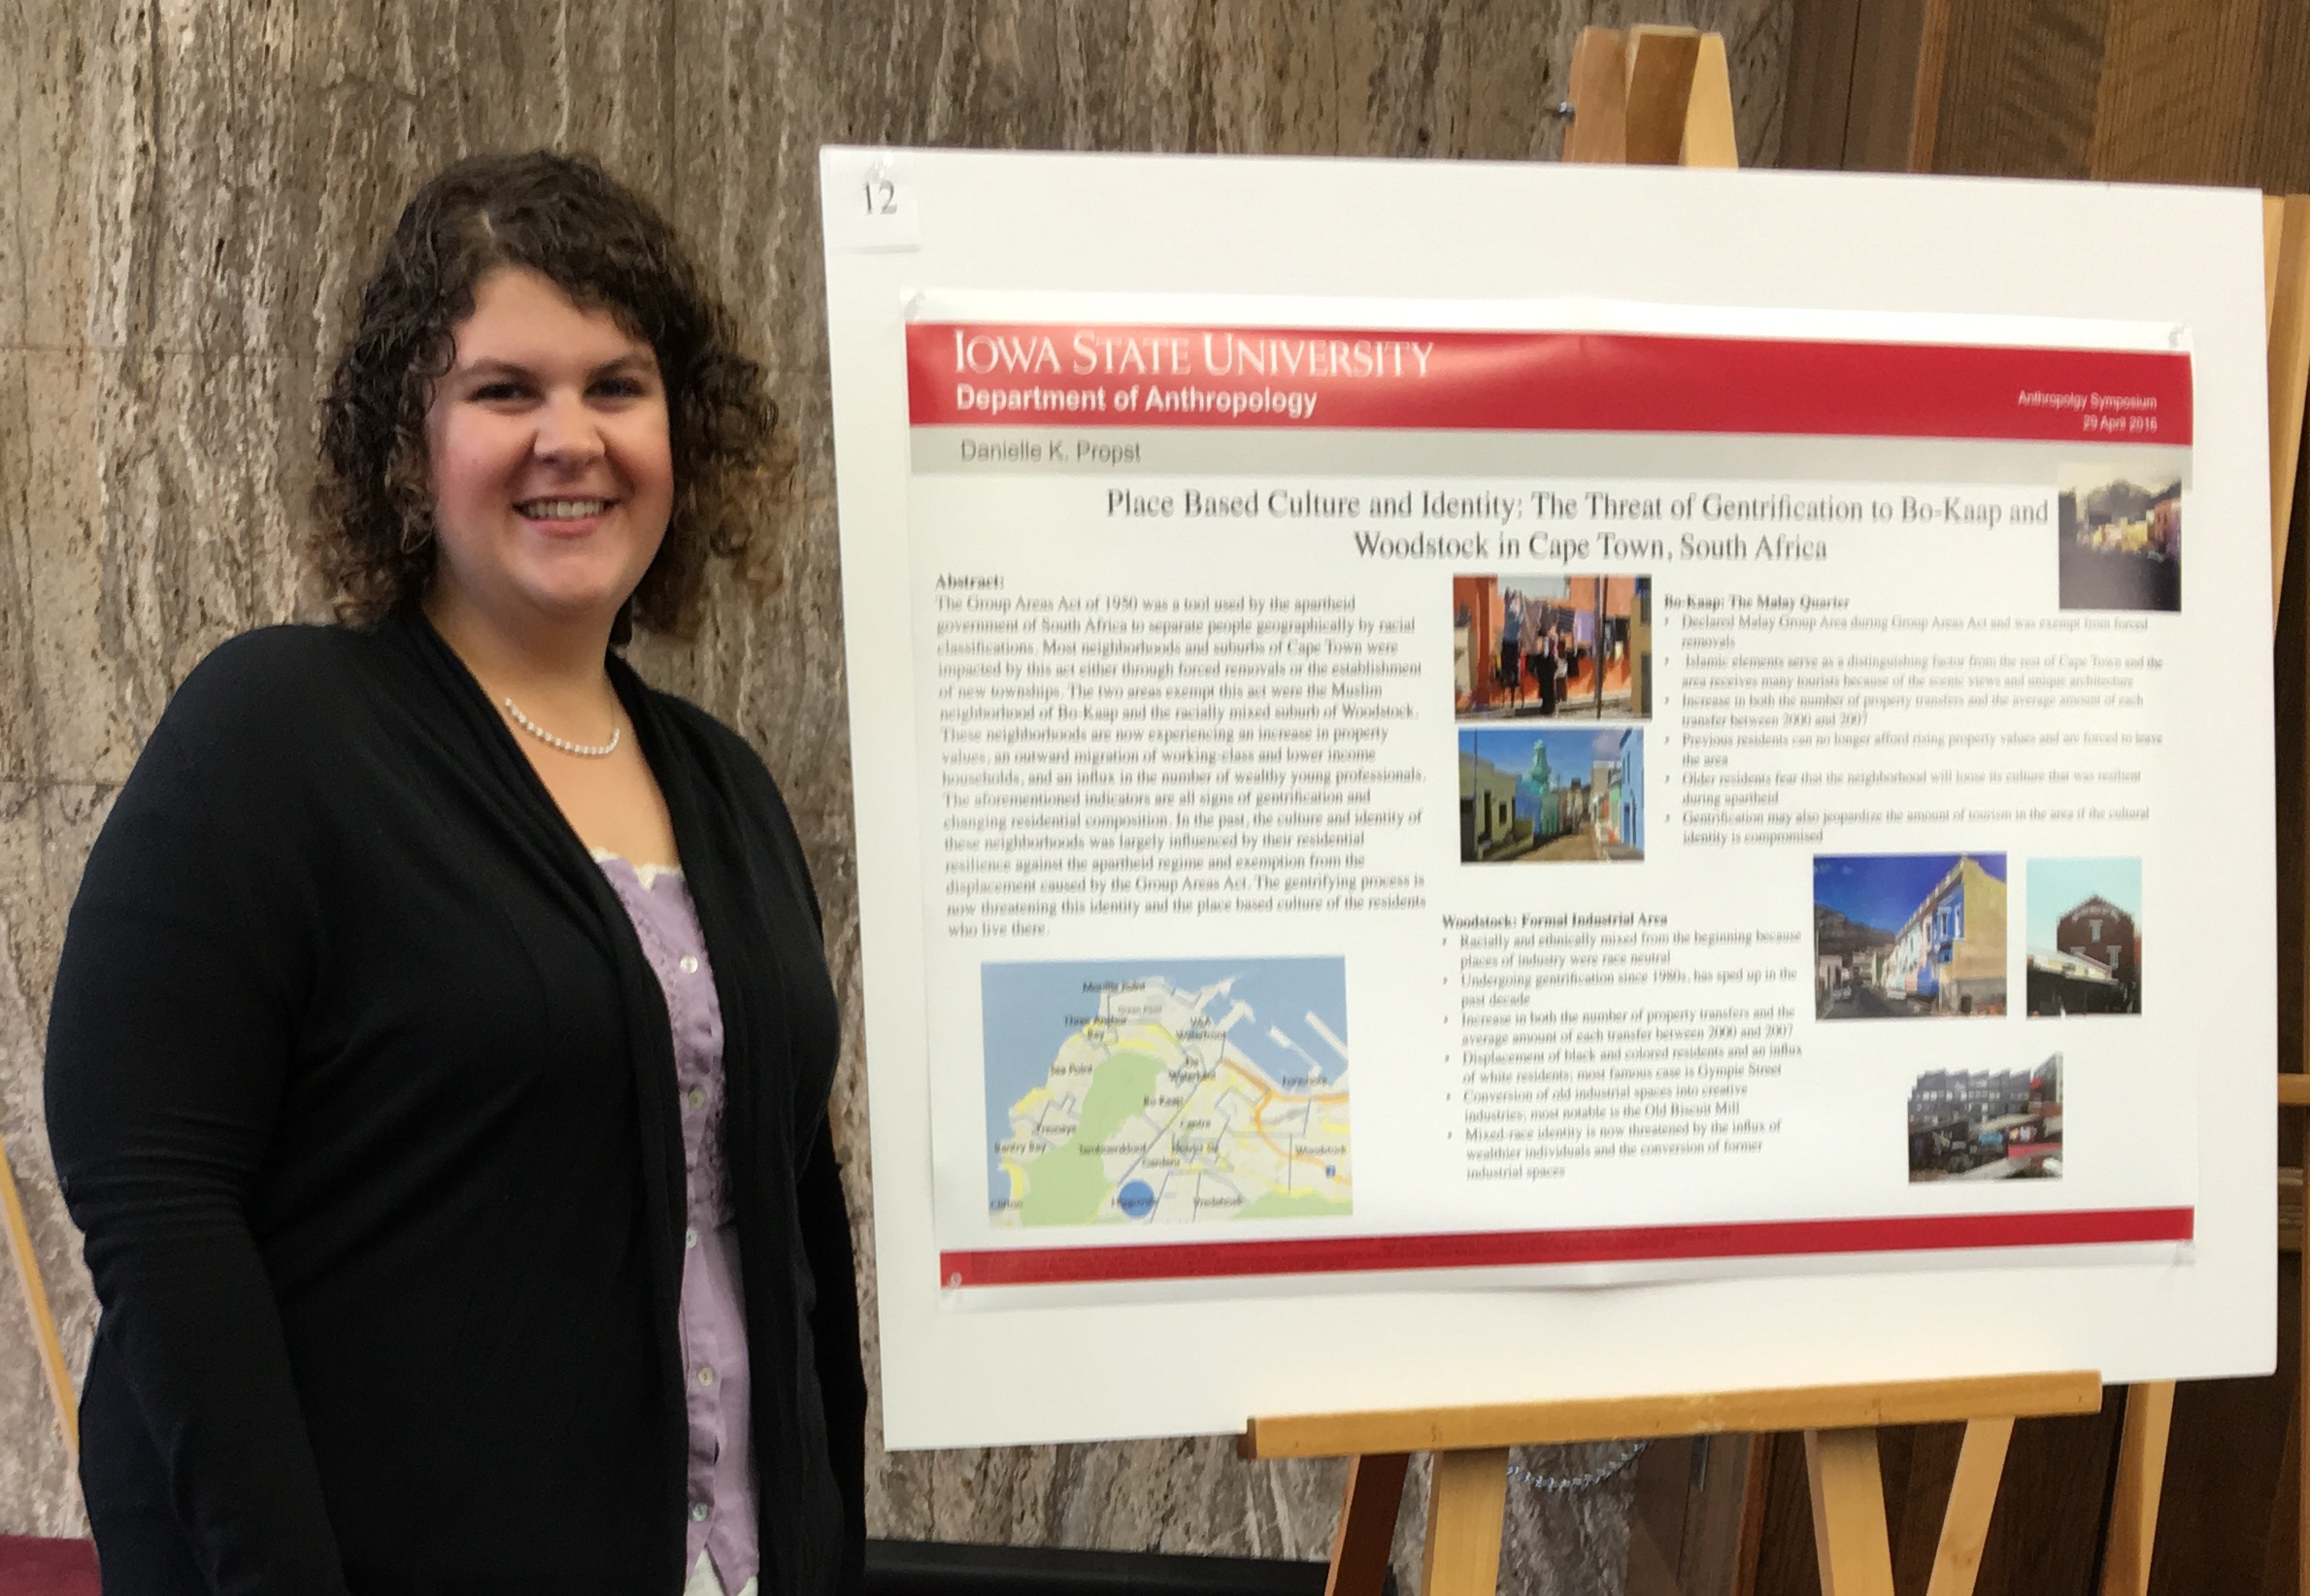 "Propst presents research from her independent study, ""Place Based Culture and Identity: The Threat of Gentrification to Bo-Kaap and Woodstock in Cape Town, South Africa"" at the Undergraduate Anthropology Symposium in April 2016."